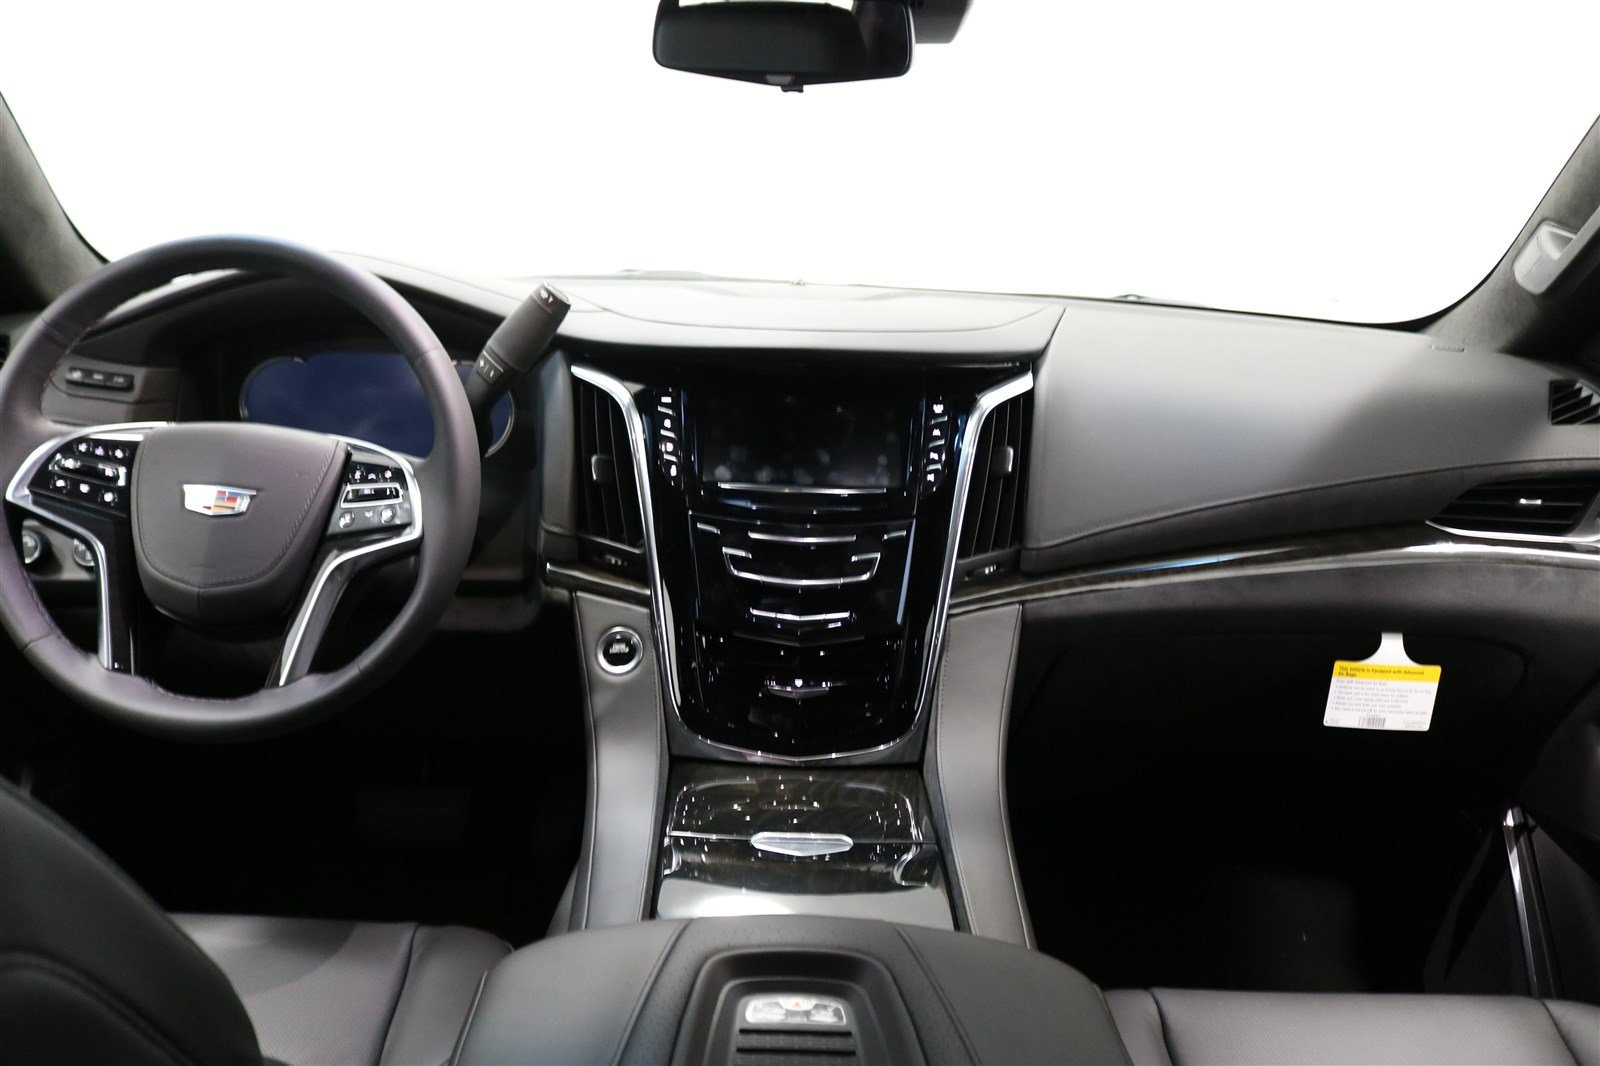 esv news platinum in cadillac fight much is navigator thousand roadshow dollar to how a discounts ten escalade offering